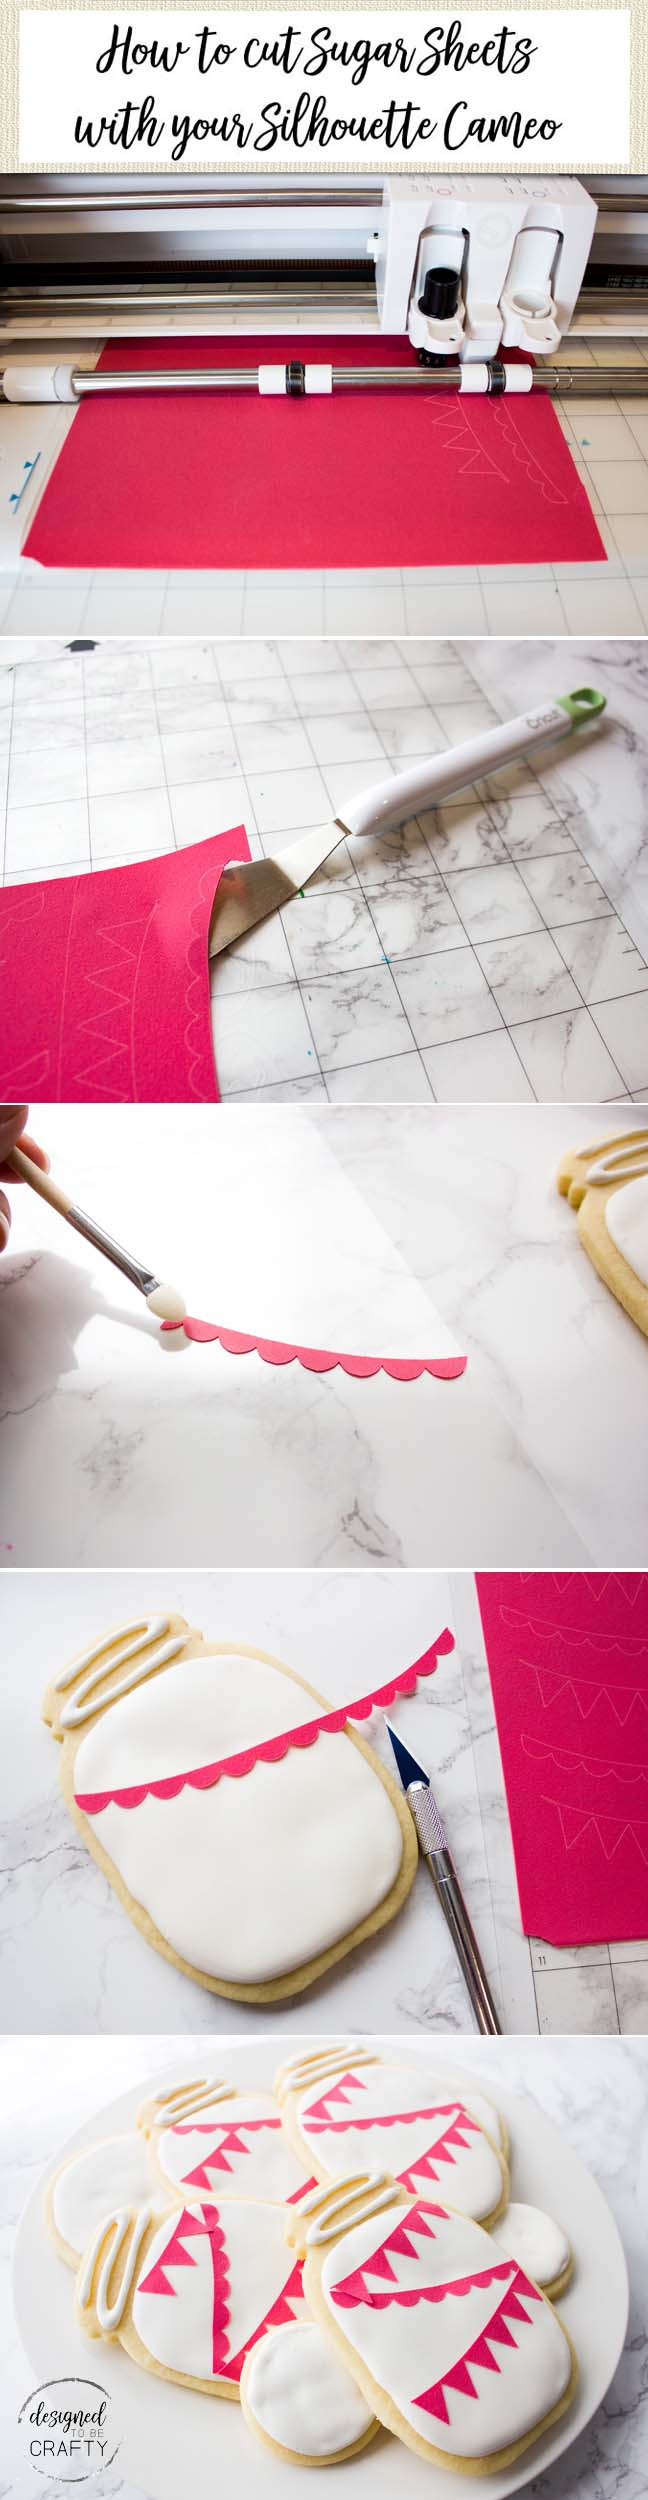 A complete tutorial on how to easily create professional looking treats using sugar sheets and your Silhouette.